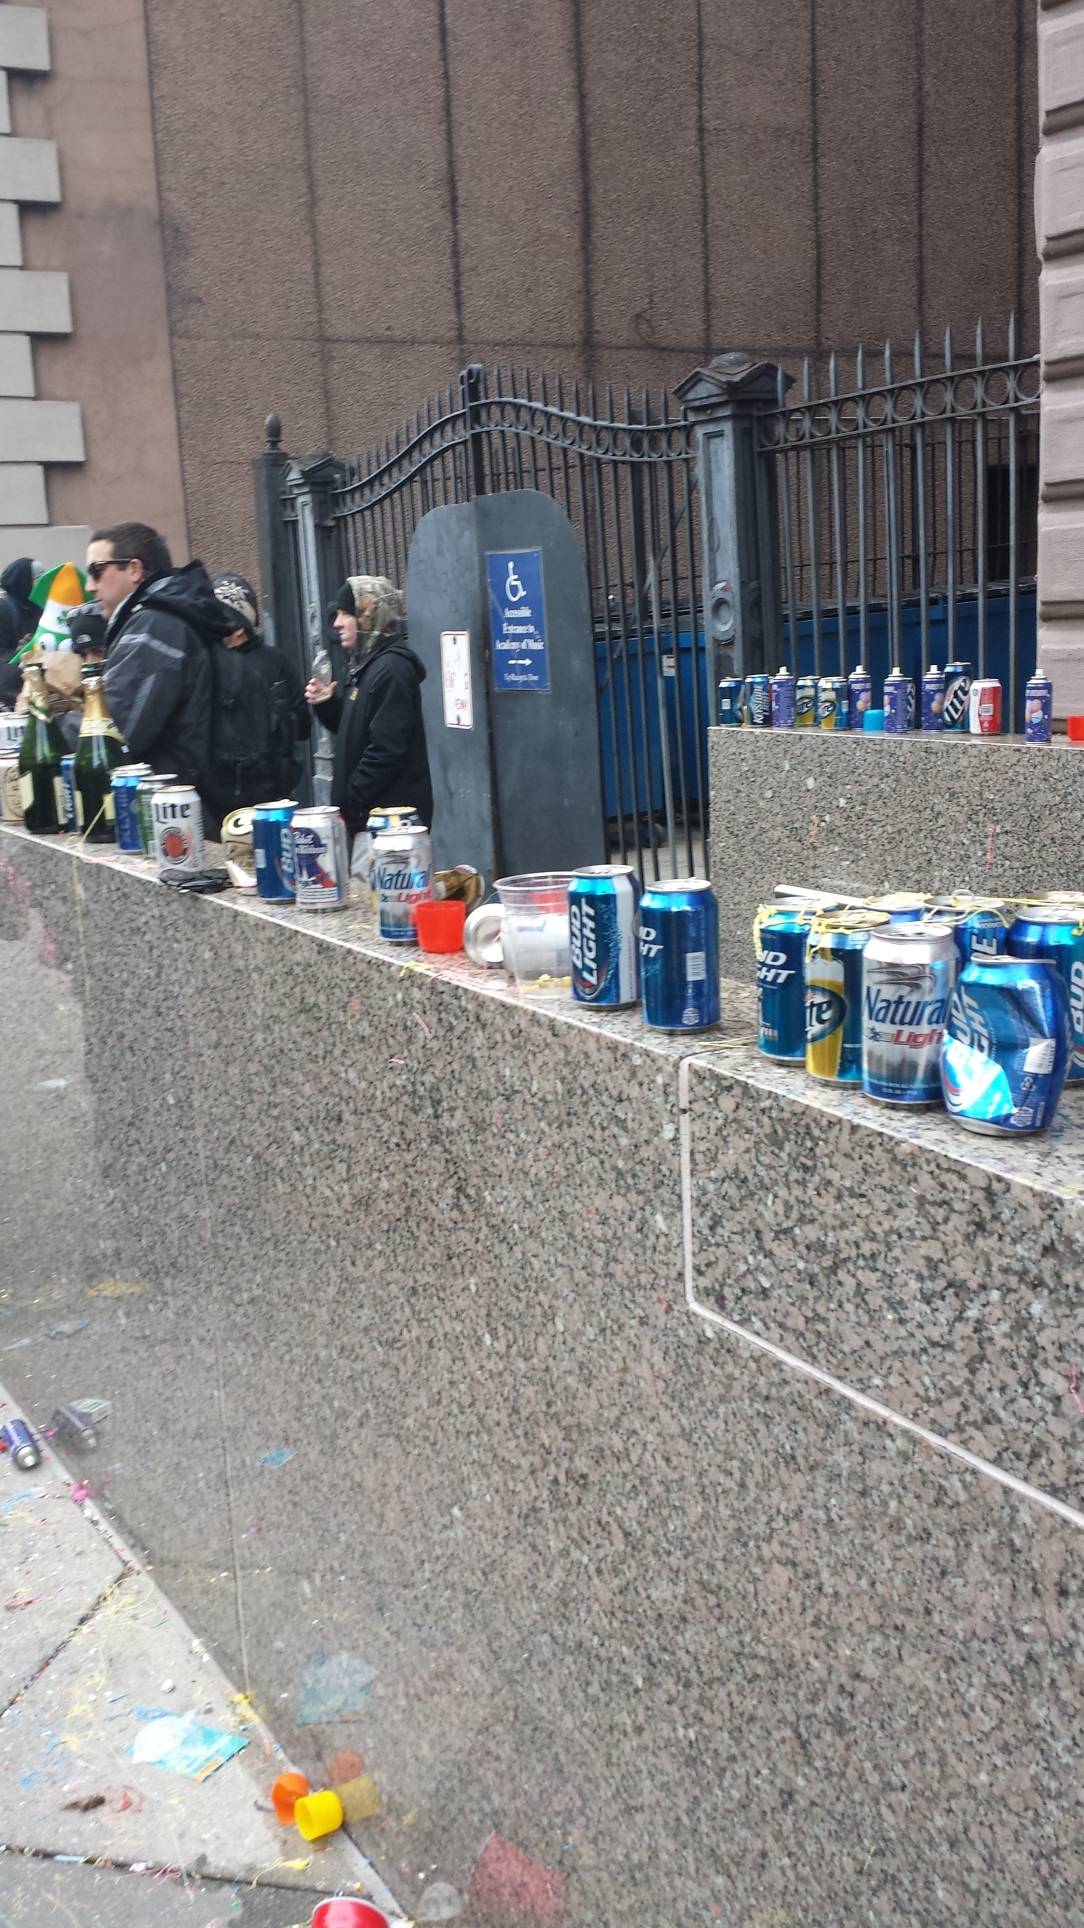 The trash was indicative of how good a time everyone was having.